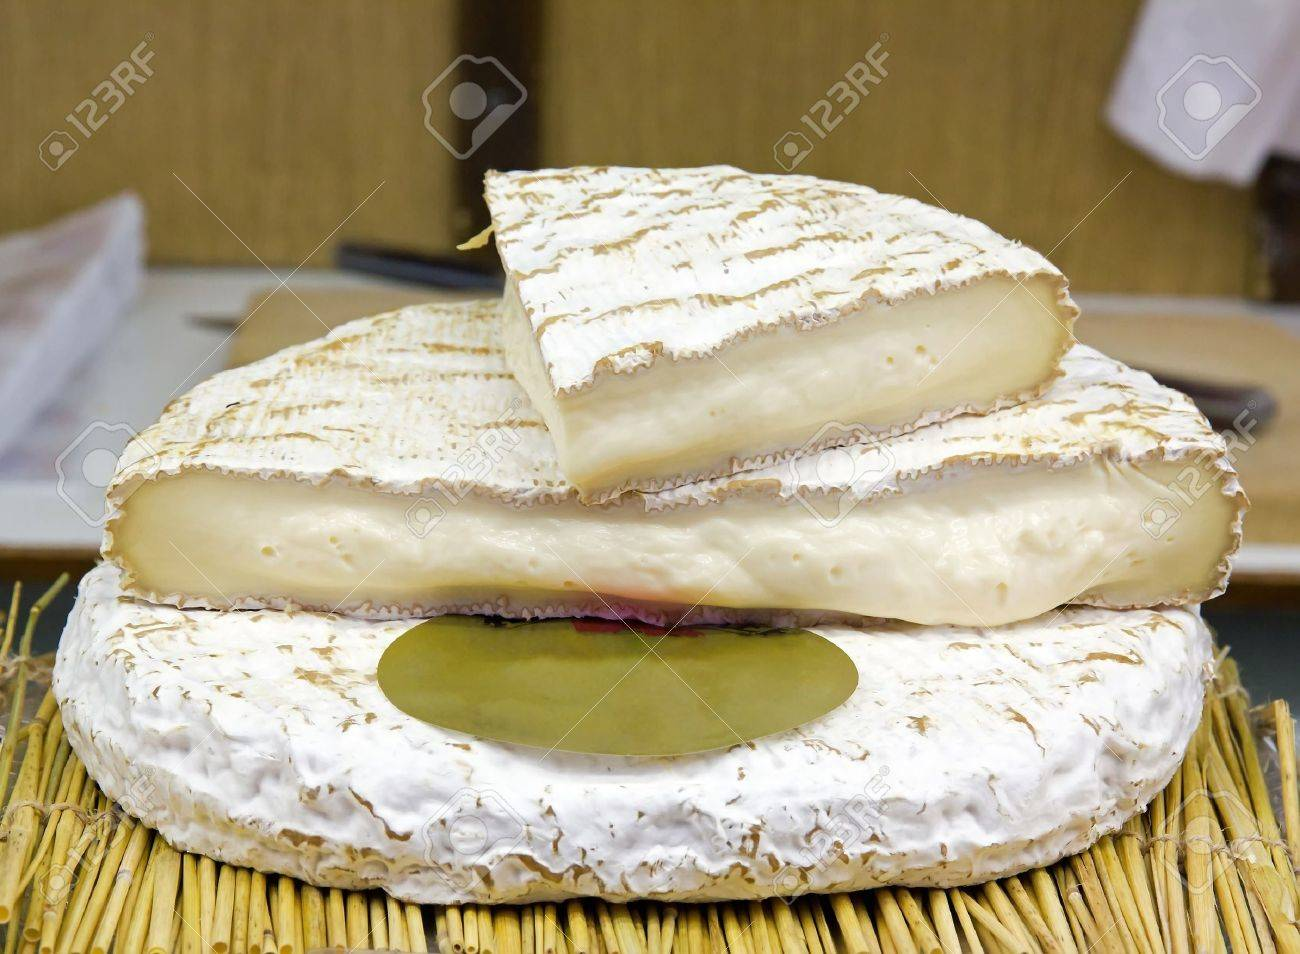 https://previews.123rf.com/images/neko92vl/neko92vl1201/neko92vl120100008/11926271-brie-de-meaux-cheese-a-specialty-of-the-paris-region.jpg